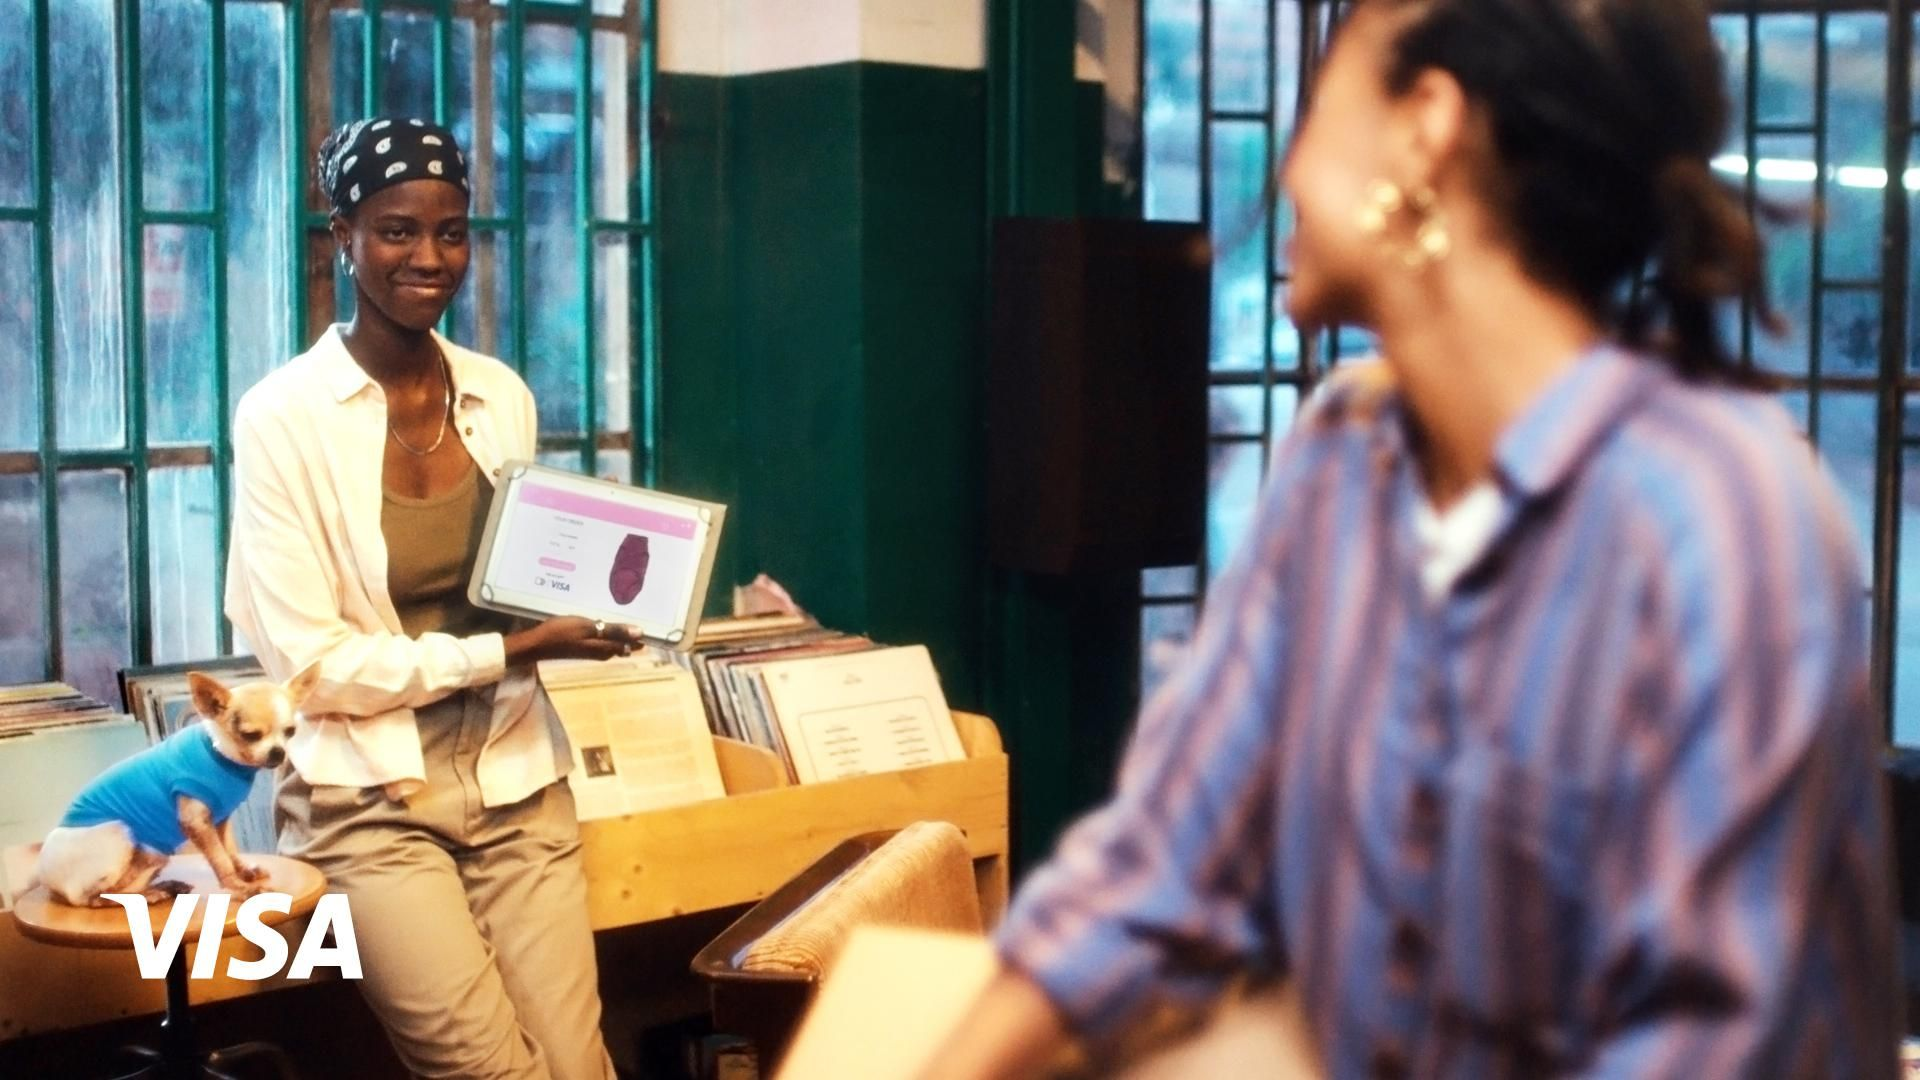 Two Black women looking at one another across a record store, one showing a screen displaying an online Visa purchase